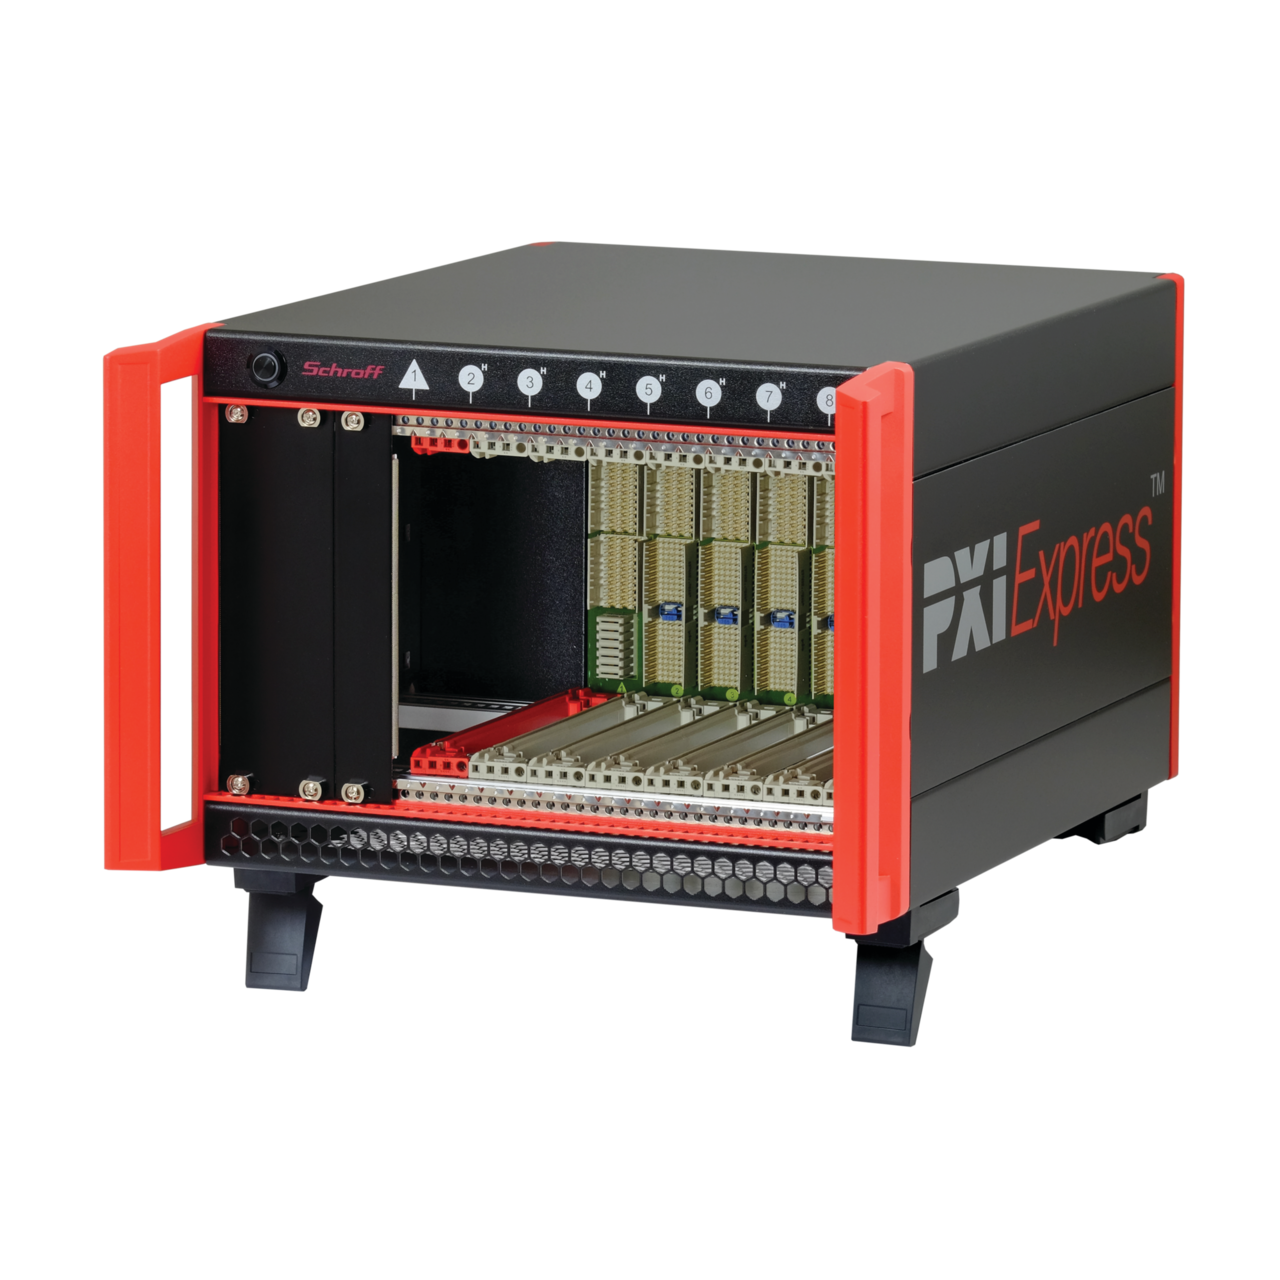 Image for PXI-Express system, 4 U, 8 slot, 44 HP from Schroff - Asia Pacific